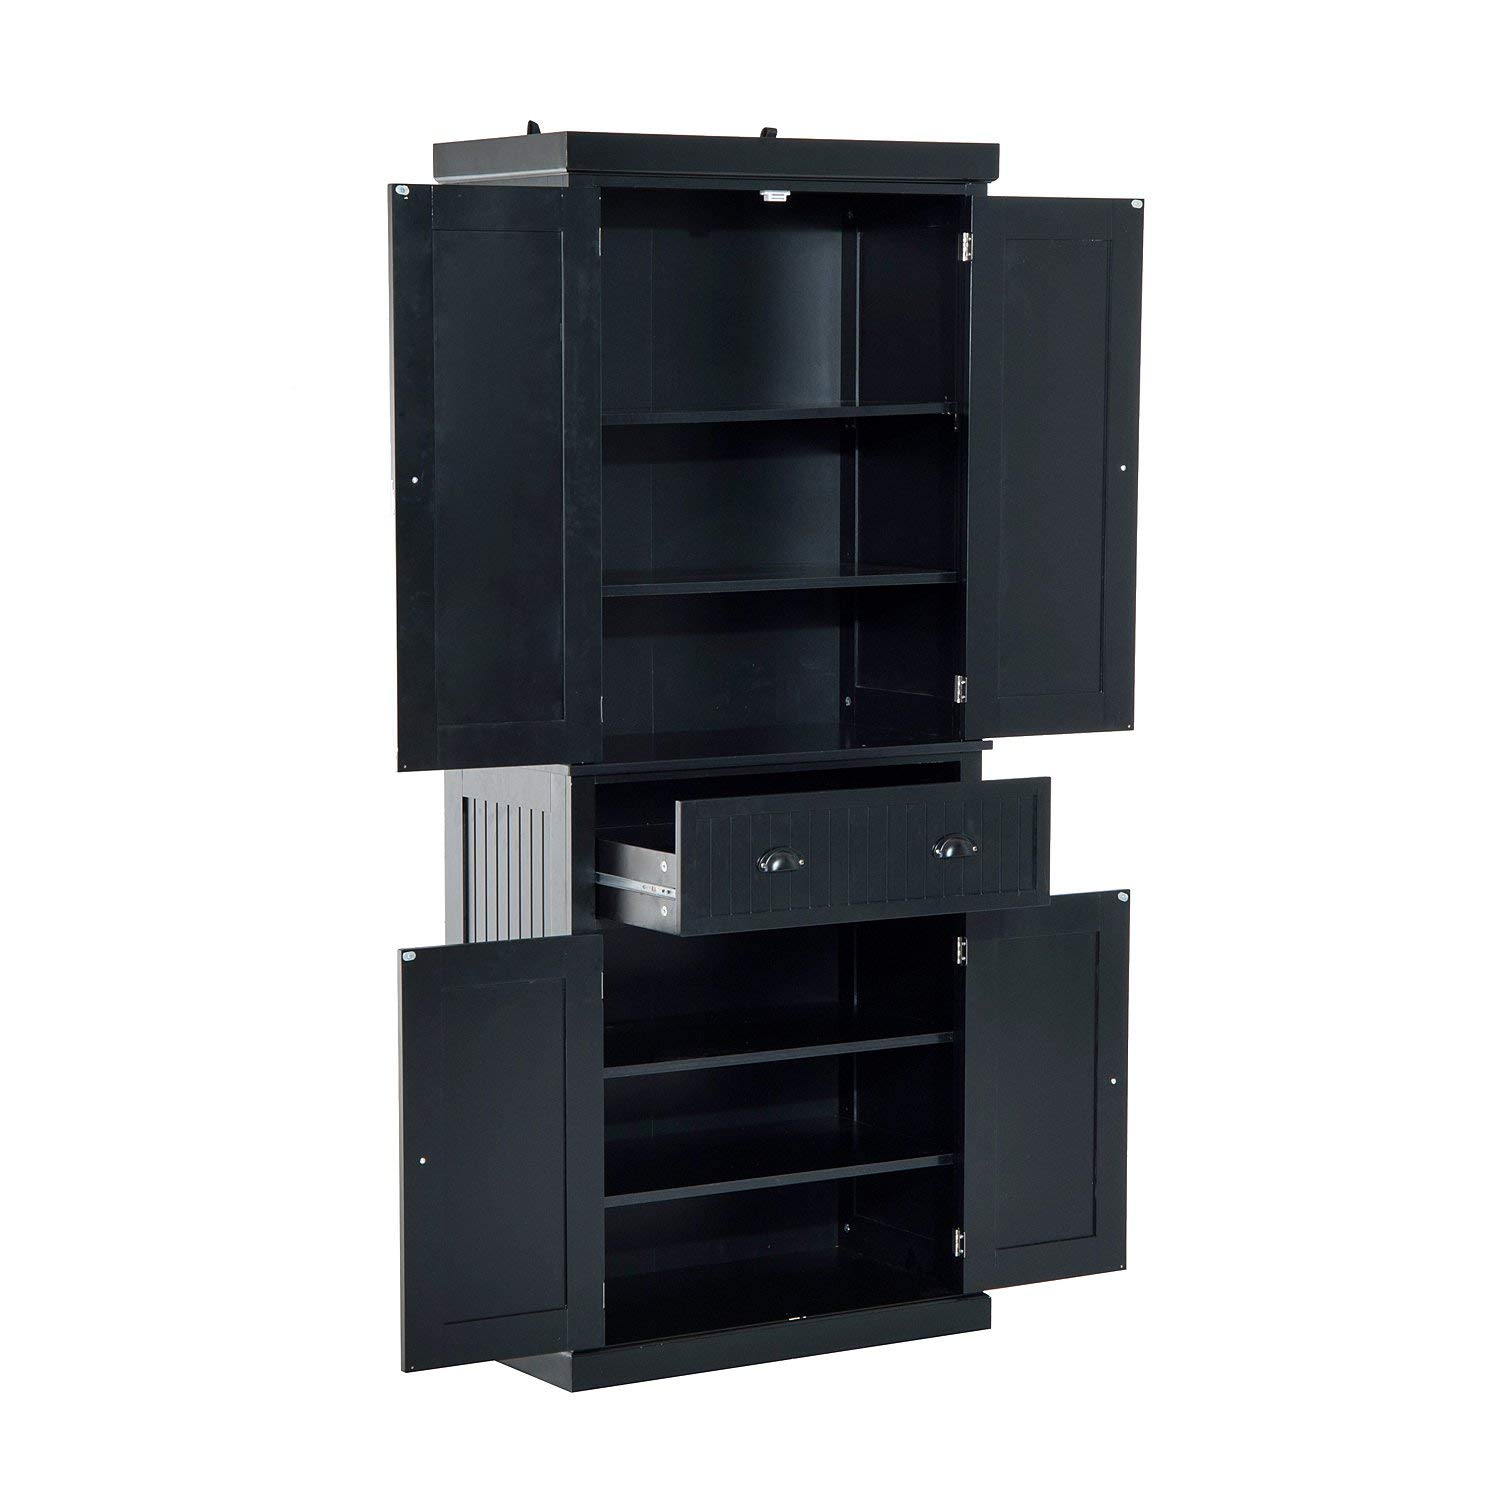 """Festnight Tall Kitchen Pantry Storage Cabinet, Traditional Standing Kitchen Pantry Cupboard Cabinet Black 72"""" by Festnight (Image #2)"""